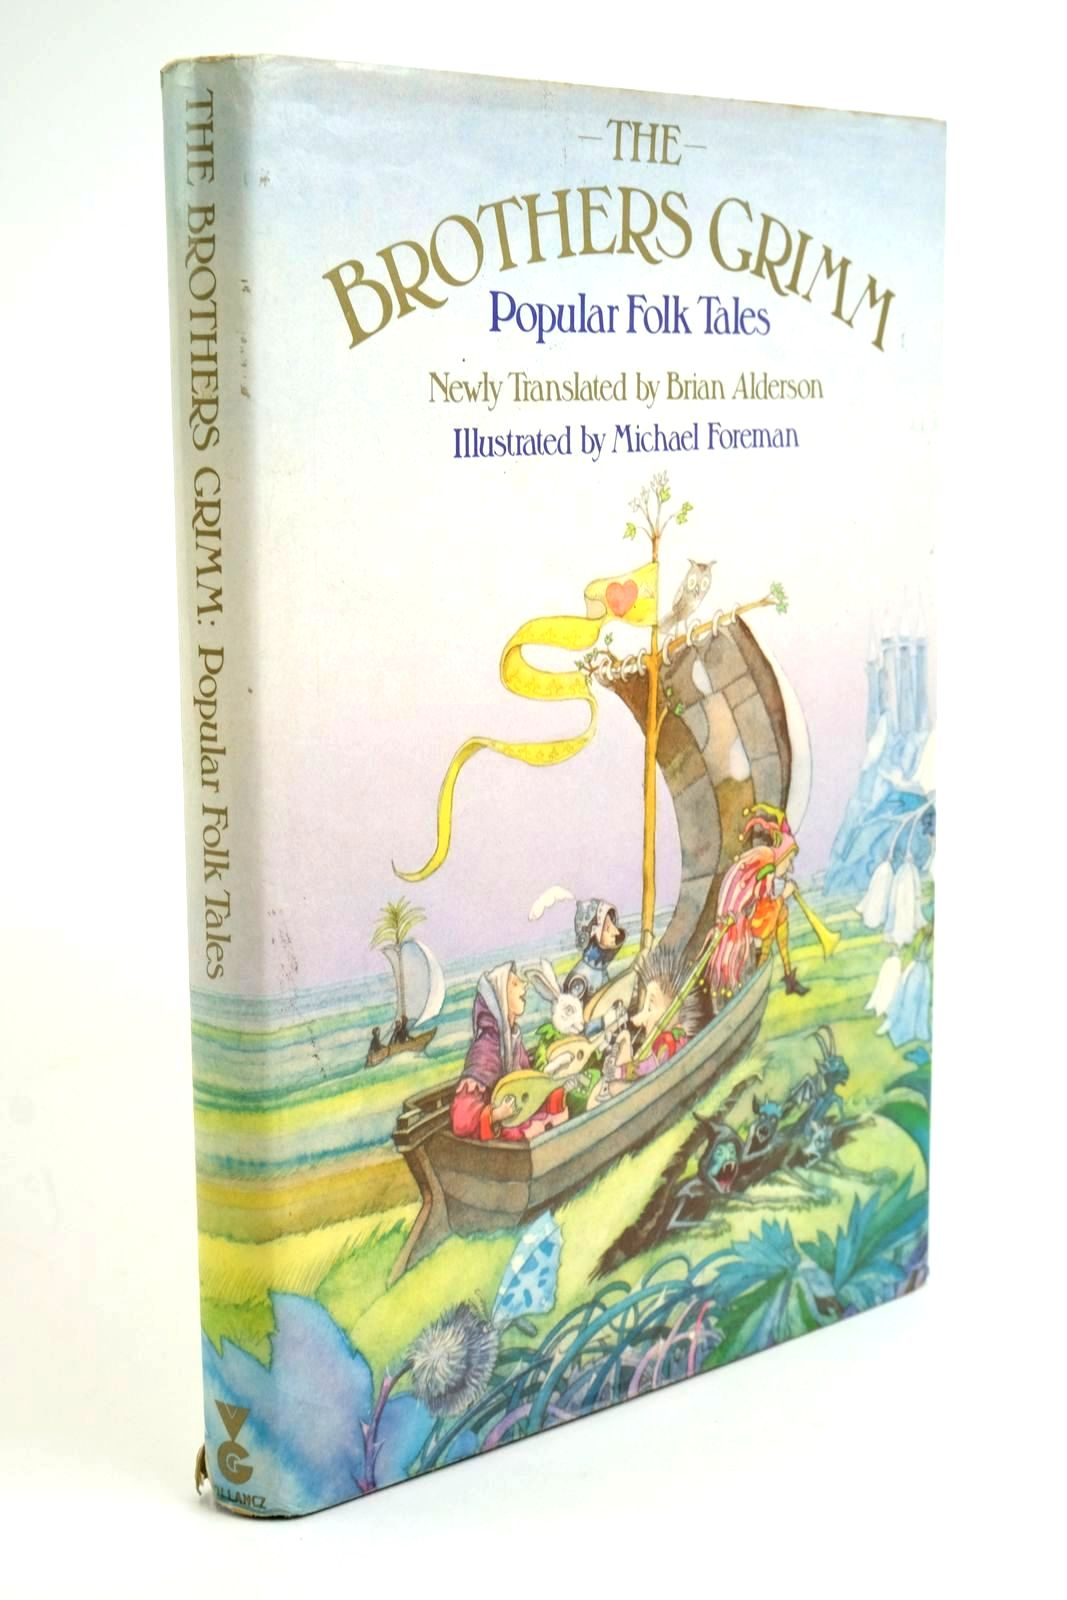 Photo of THE BROTHERS GRIMM - POPULAR FOLK TALES written by Alderson, Brian Grimm, Brothers illustrated by Foreman, Michael published by Victor Gollancz Ltd. (STOCK CODE: 1321674)  for sale by Stella & Rose's Books